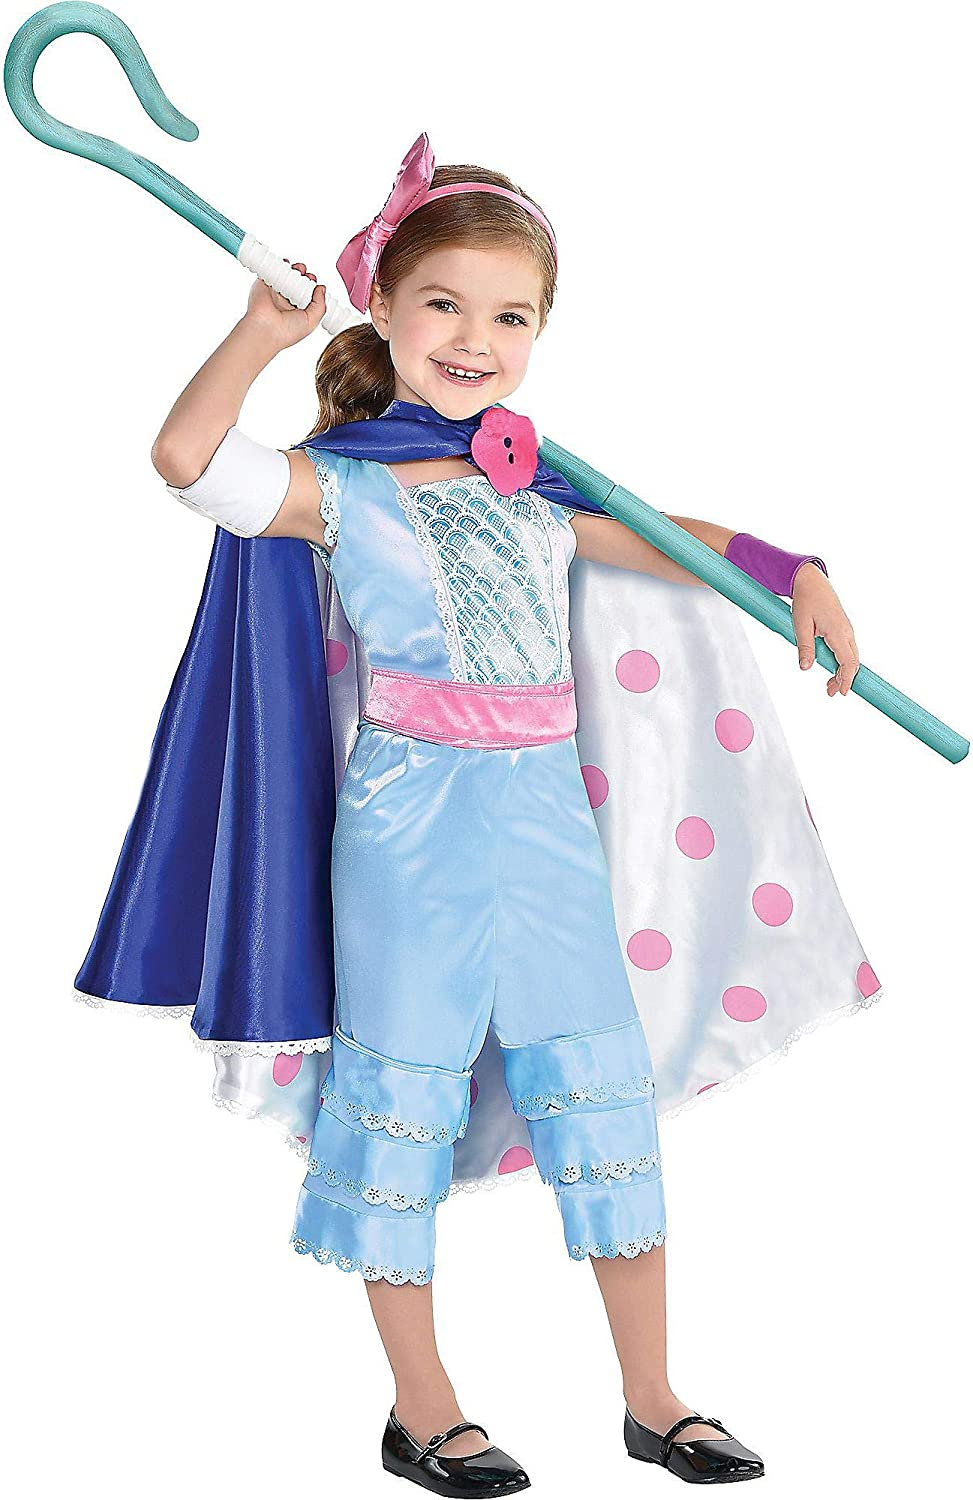 Girls Deluxe Bo Peep Costume Toy Story 4 Fancy Dress Outfit